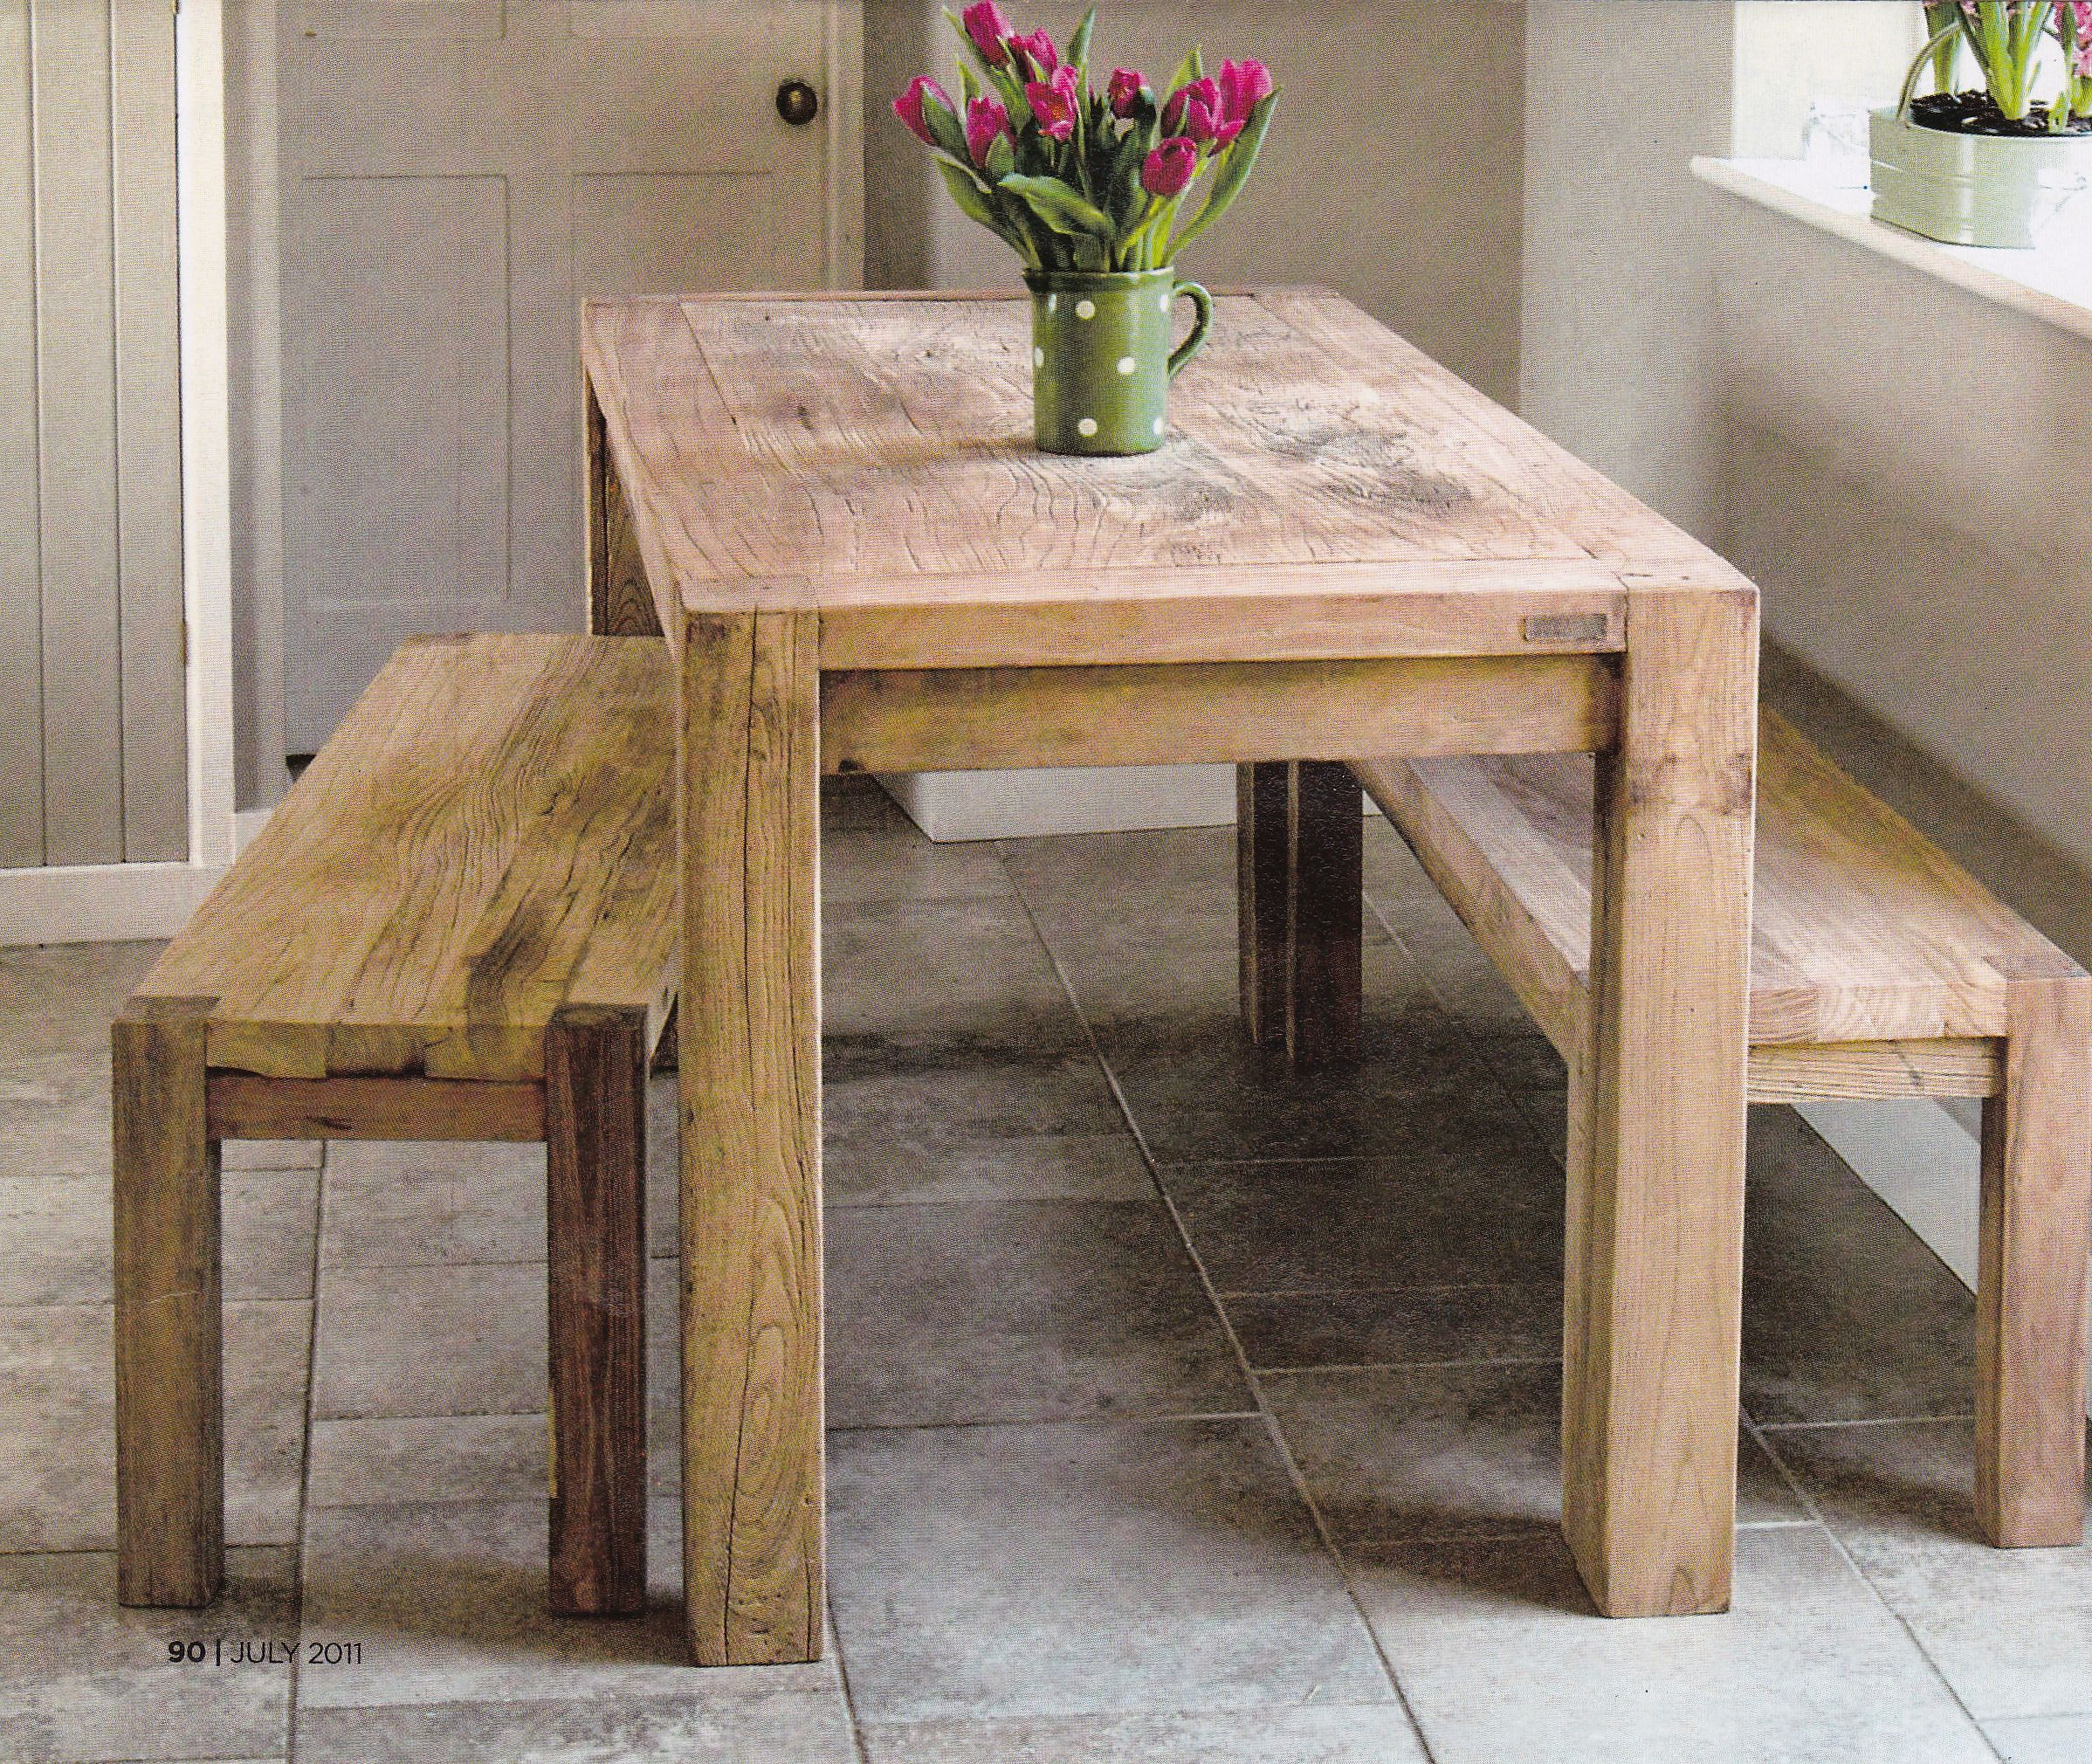 Kitchen Table With Bench: Rustic Kitchen Table With Benches That Can Slide